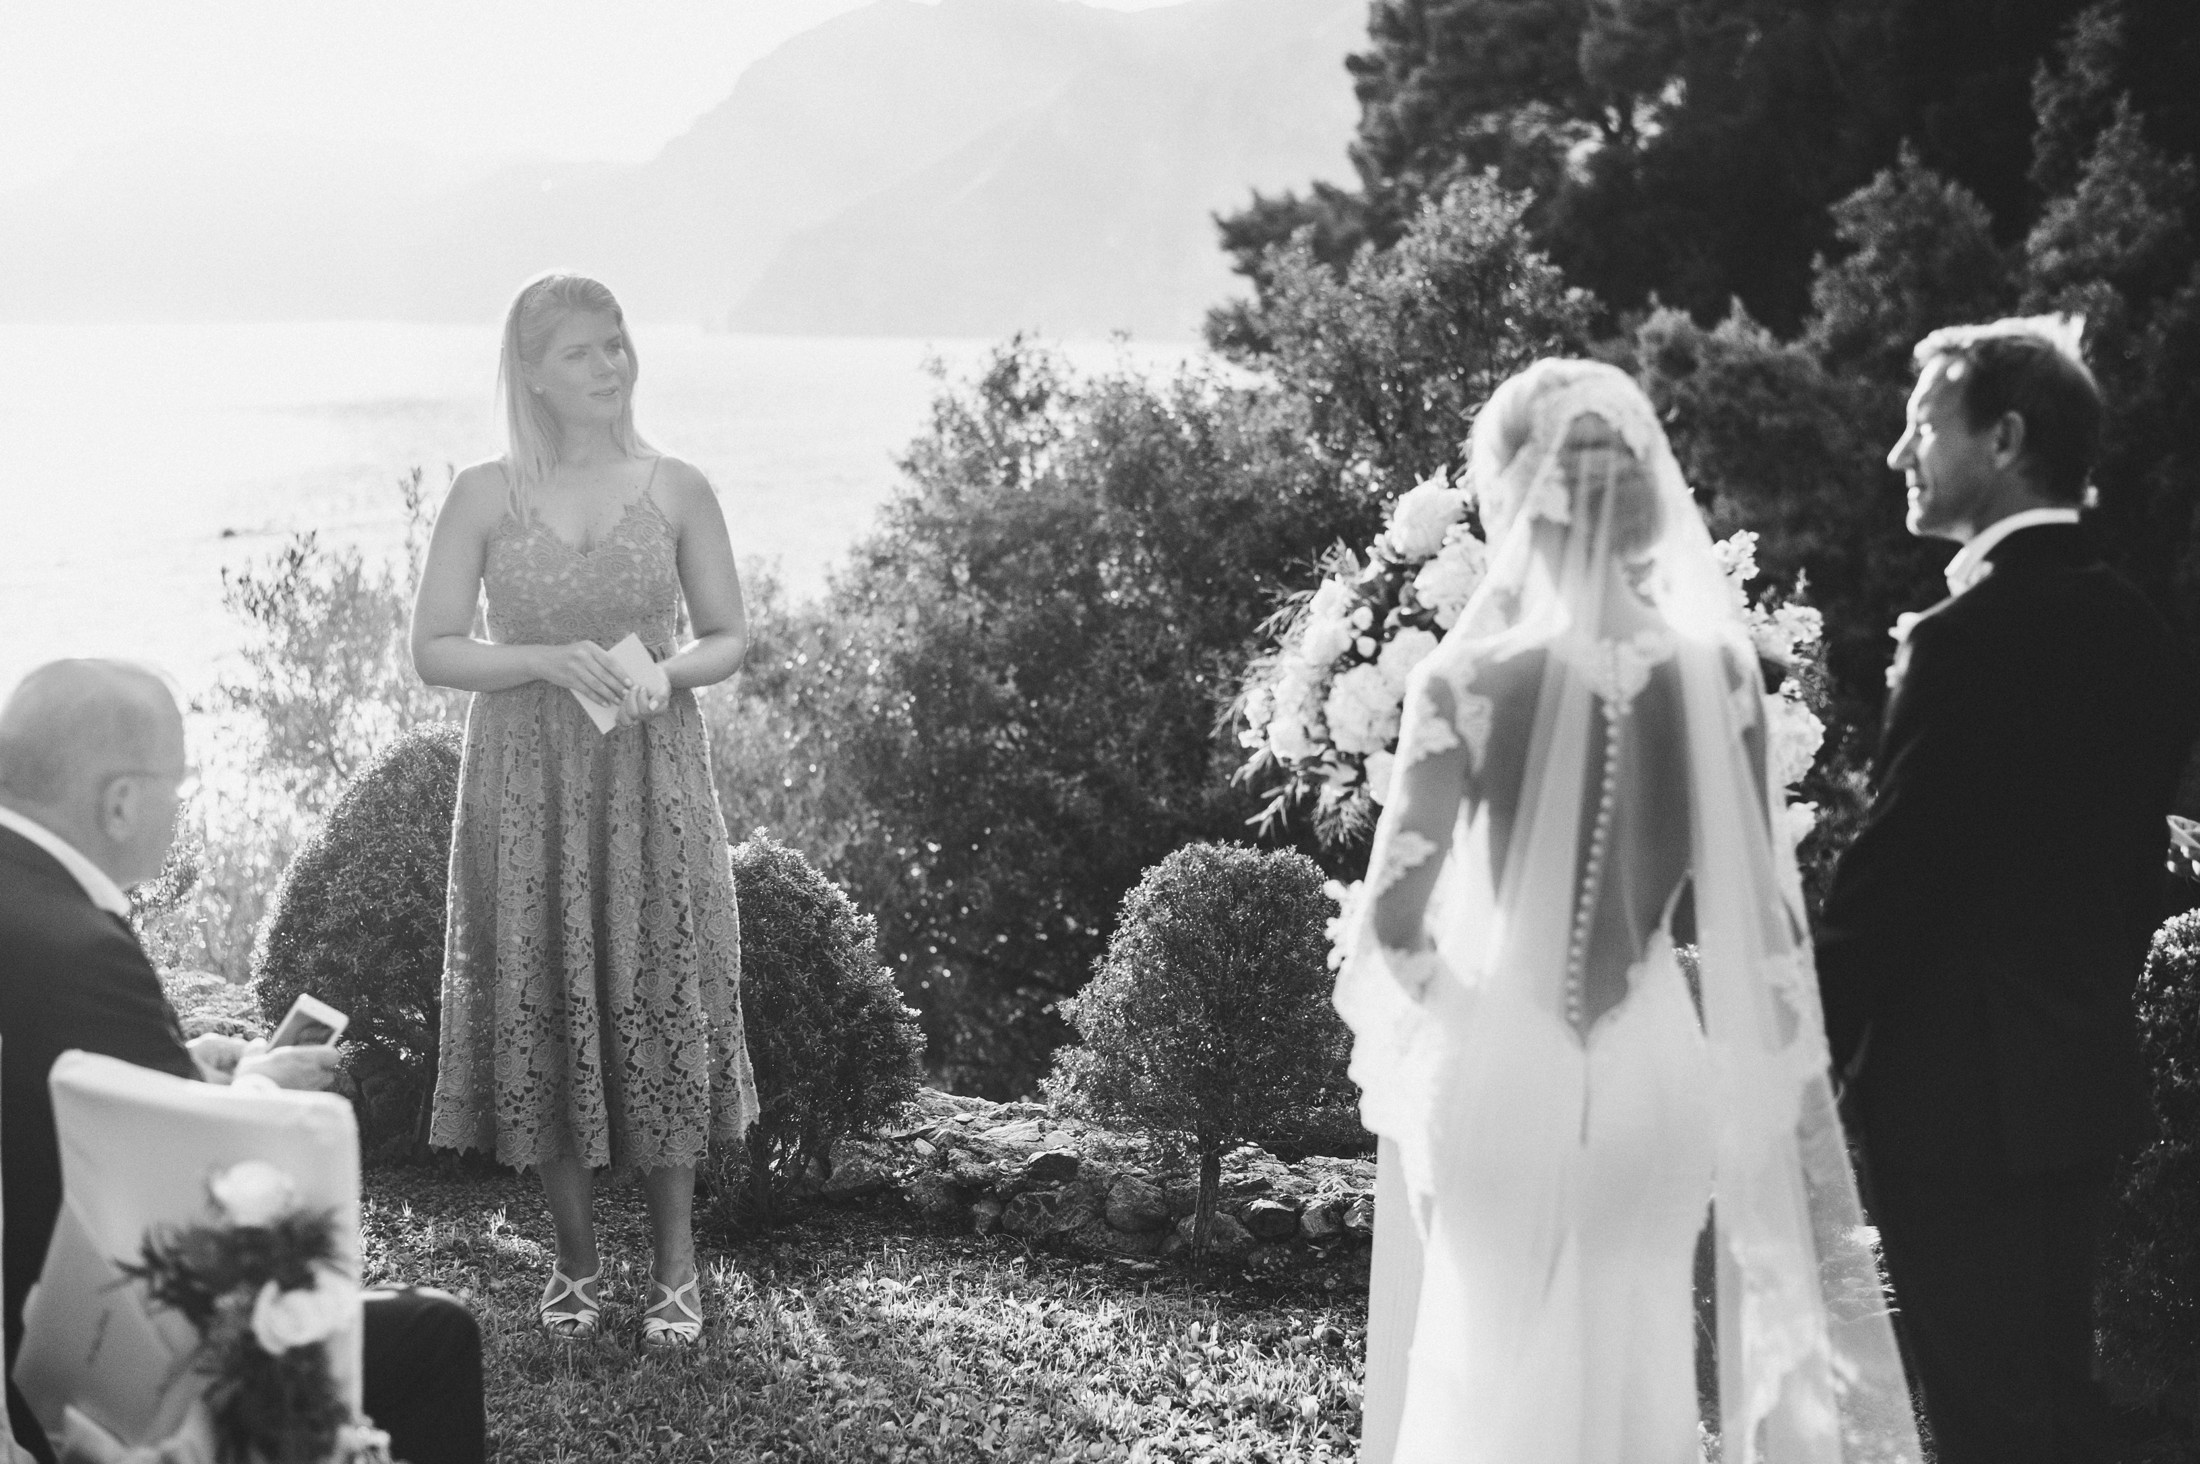 woman reading sometginh to the bride and the groom during the wedding ceremony at casa angelina in praiano